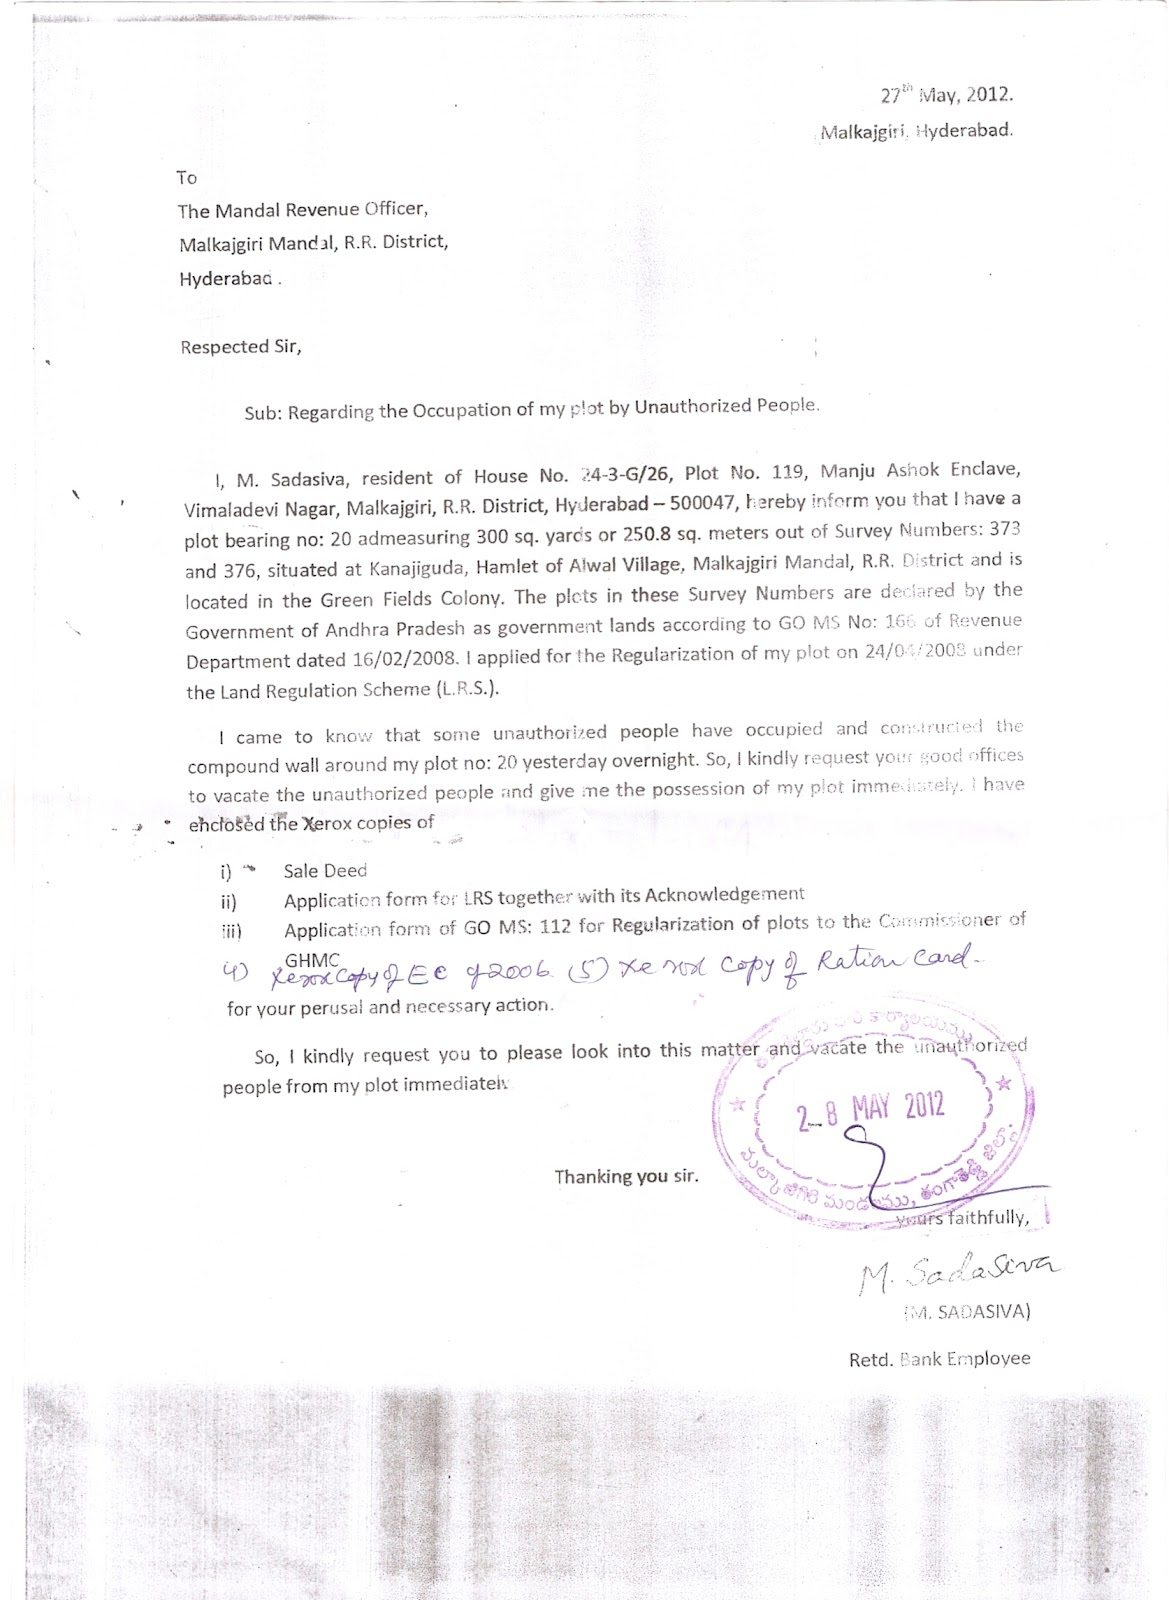 NEWS UPDATES: Scan copies of letter to MRO Office